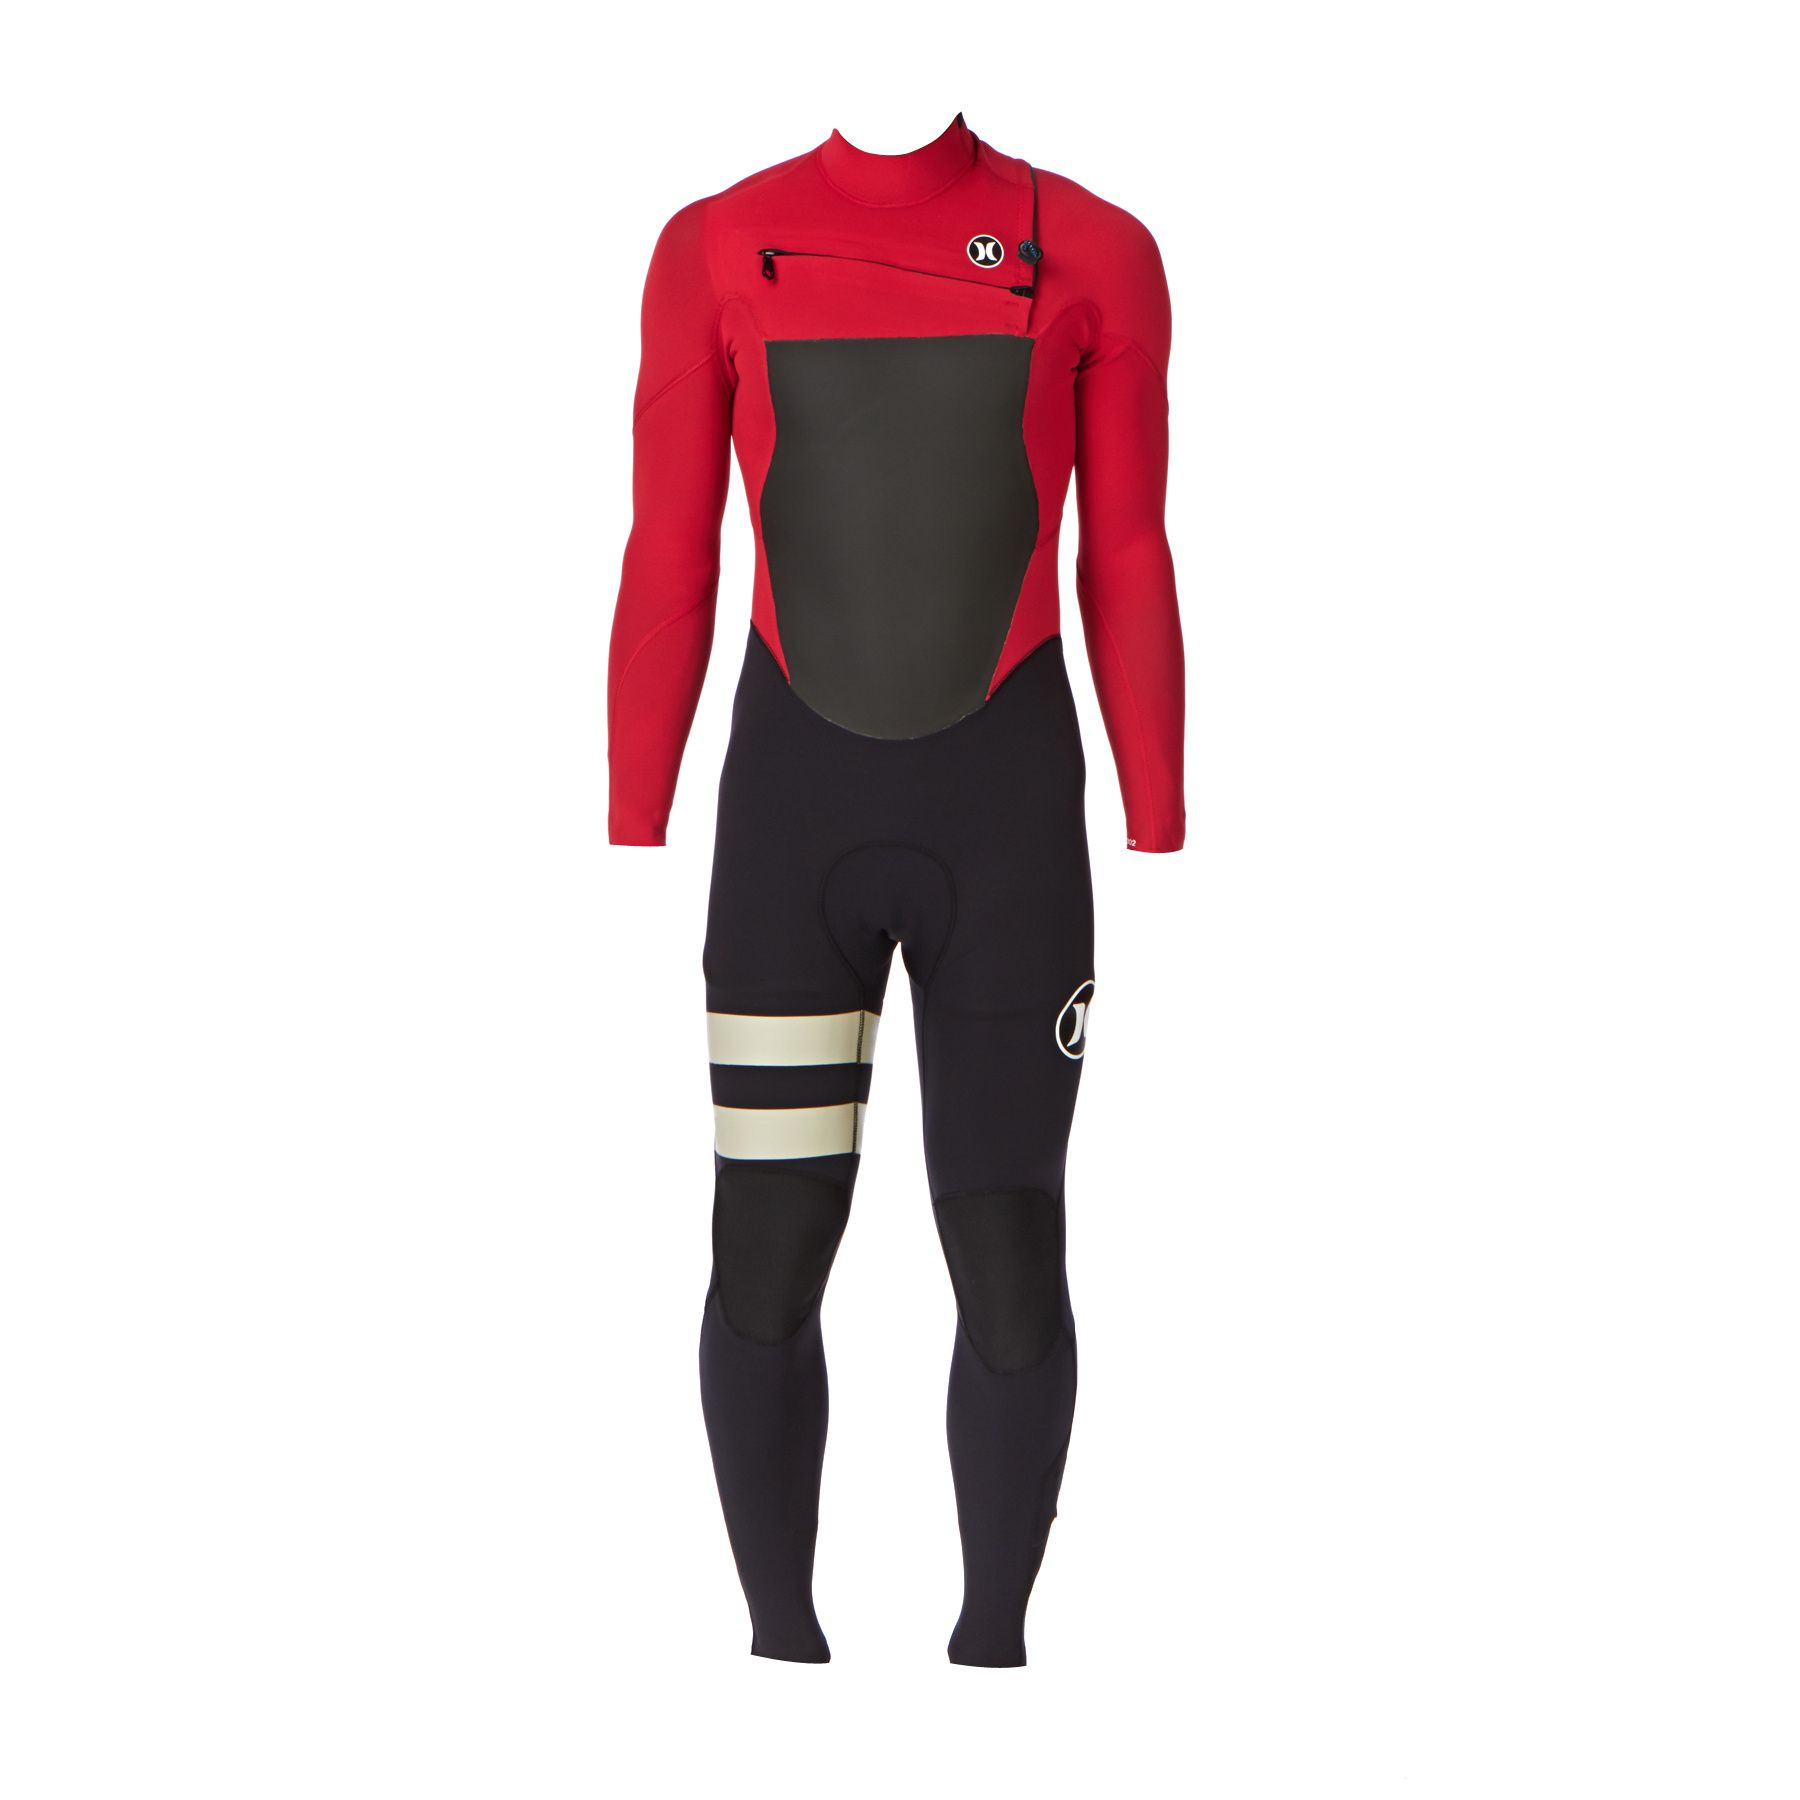 Men s Hurley Wetsuits - Hurley Fusion 3 2mm Chest Zip Wetsuit - Valient Red 27c663b03